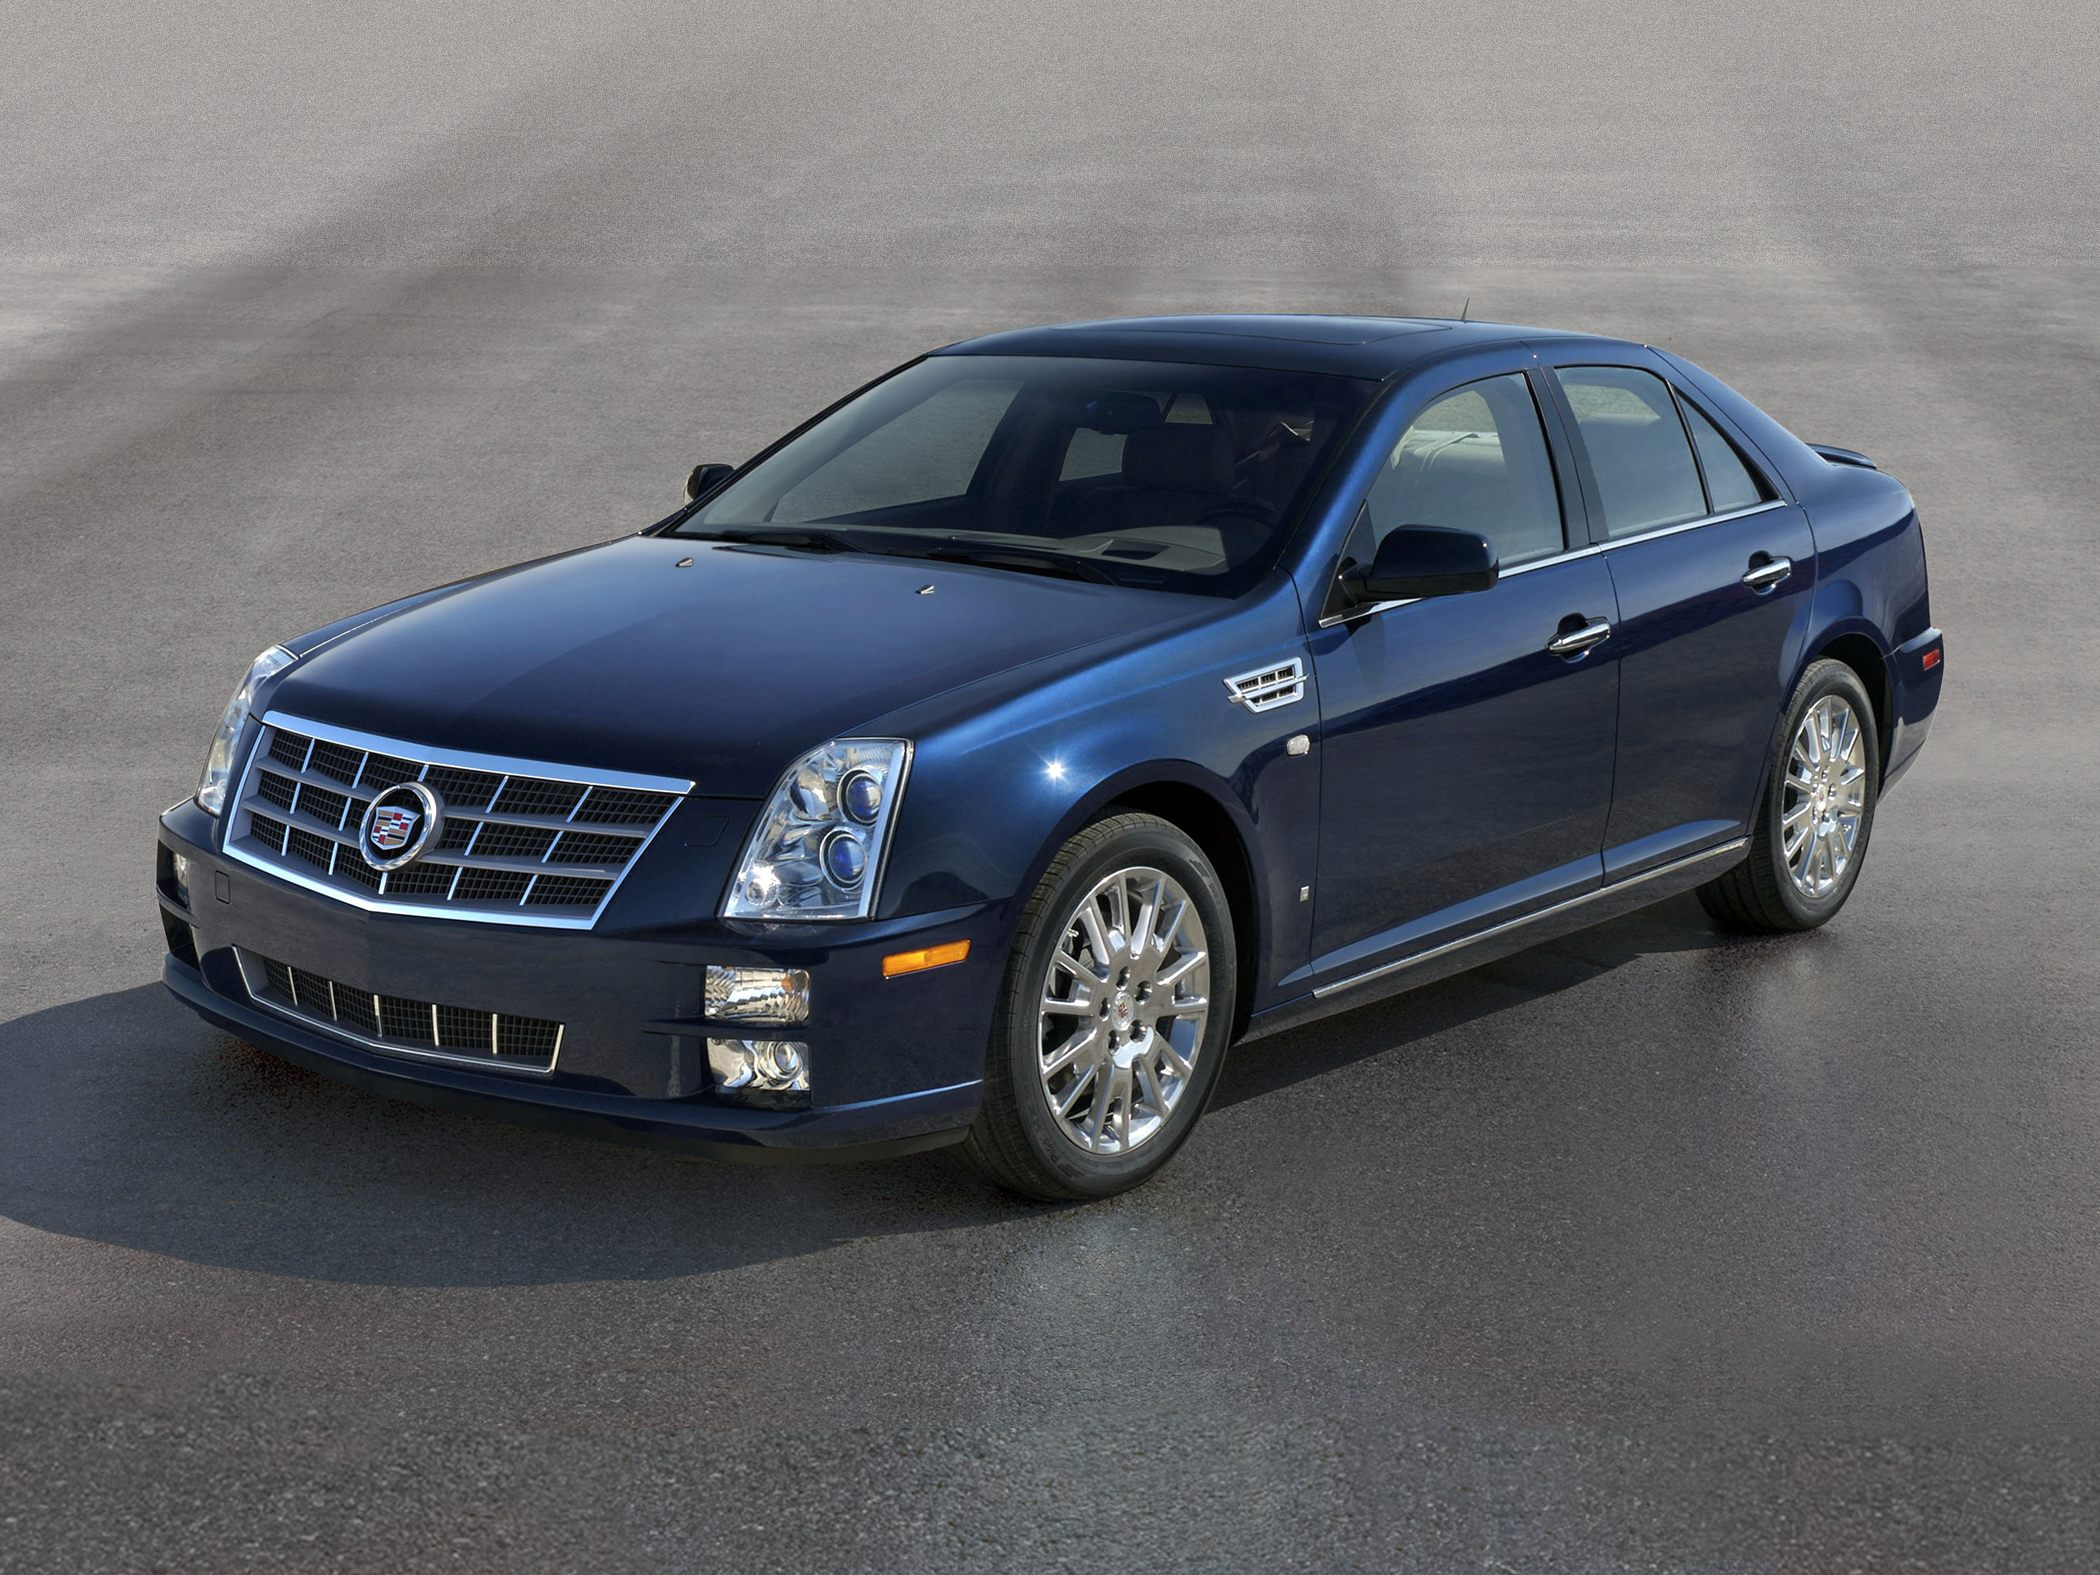 cadillac sts 2010 review amazing pictures and images look at the car. Black Bedroom Furniture Sets. Home Design Ideas